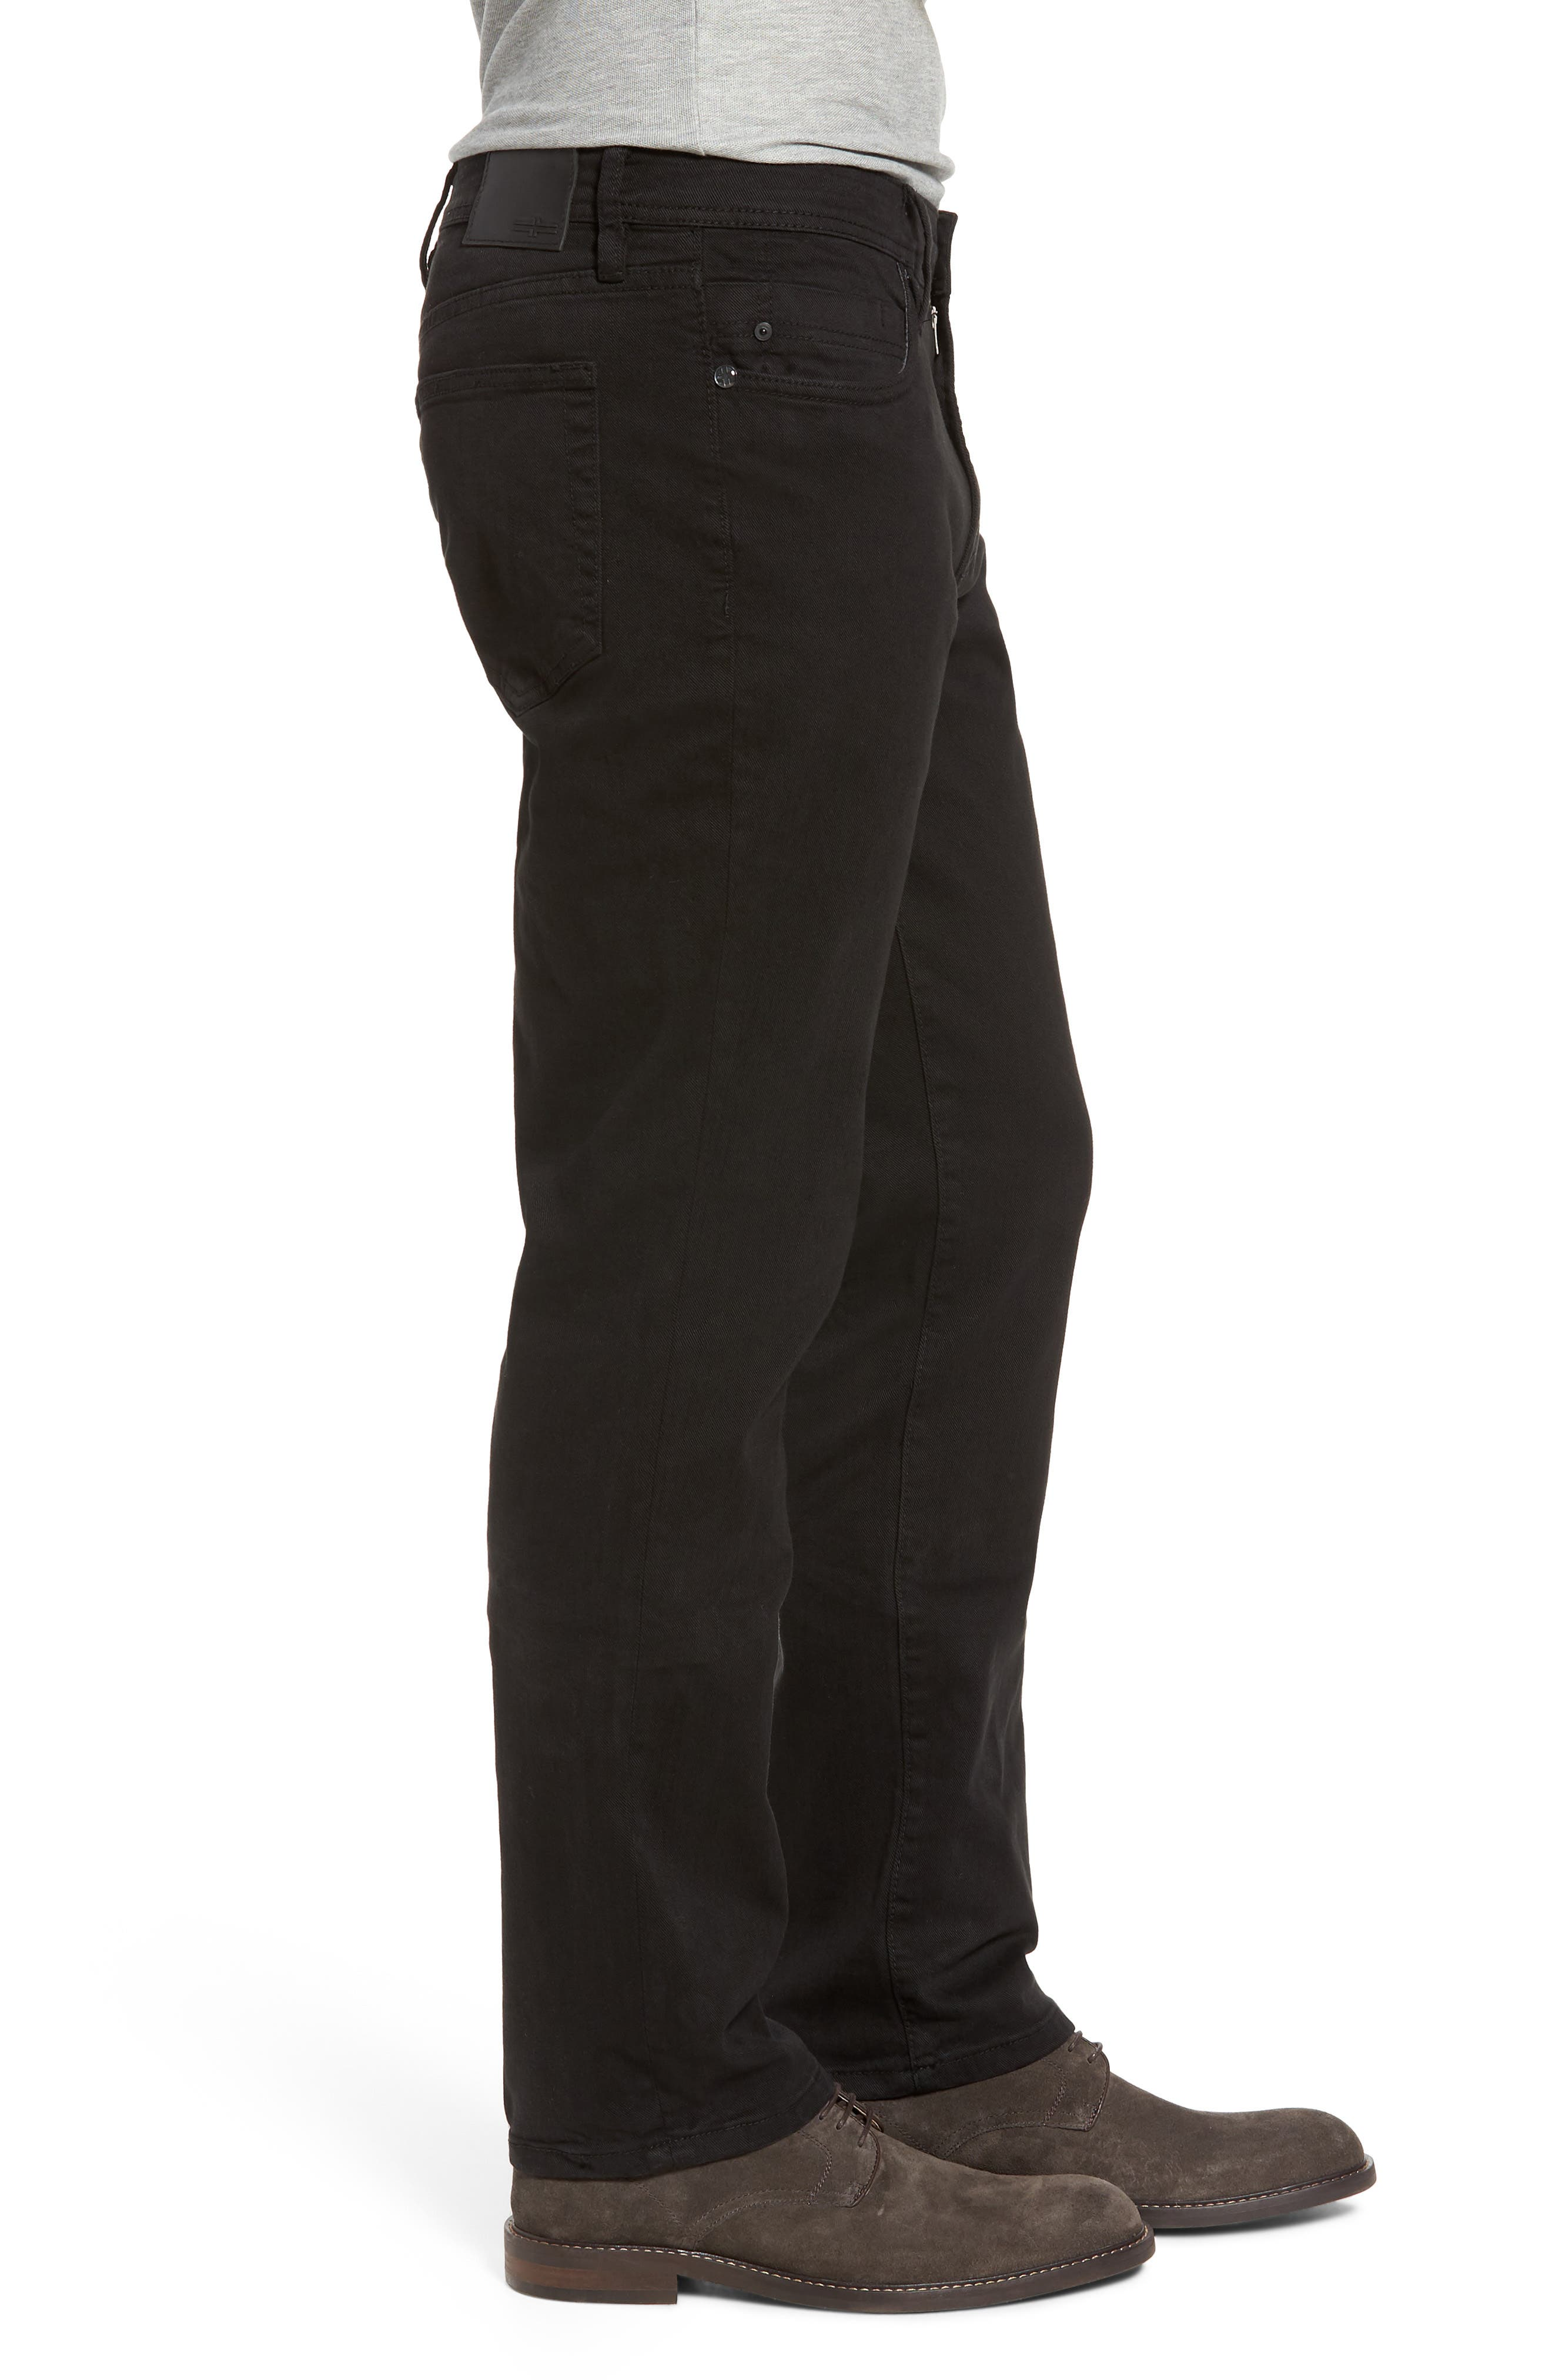 Jeans Co. Regent Relaxed Fit Jeans,                             Alternate thumbnail 3, color,                             BLACK RINSE